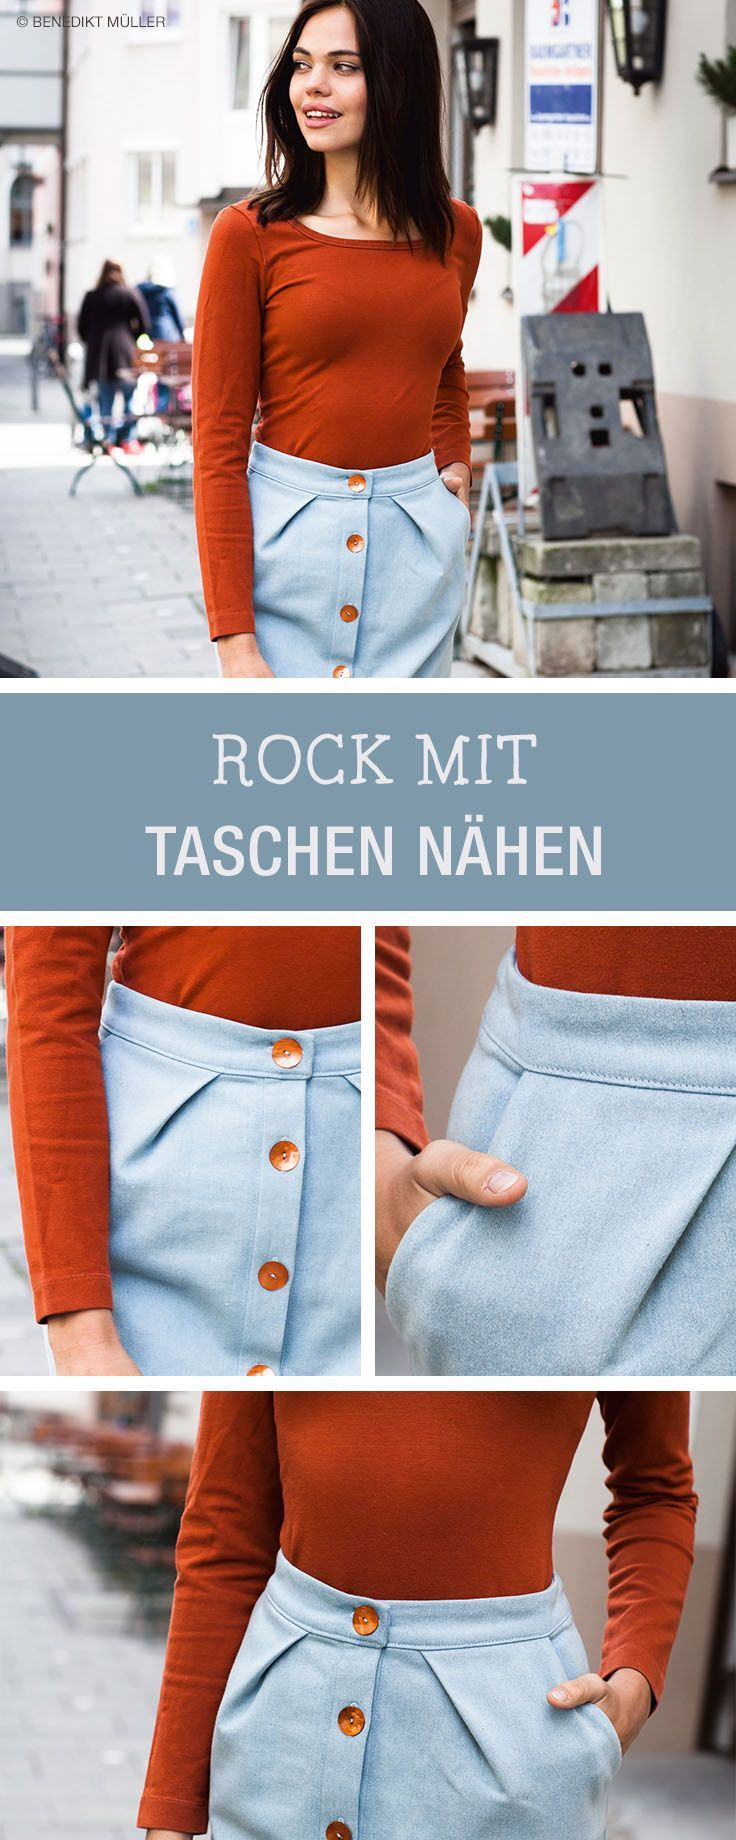 7 best Nähen - Alegra images on Pinterest | Sewing patterns ...